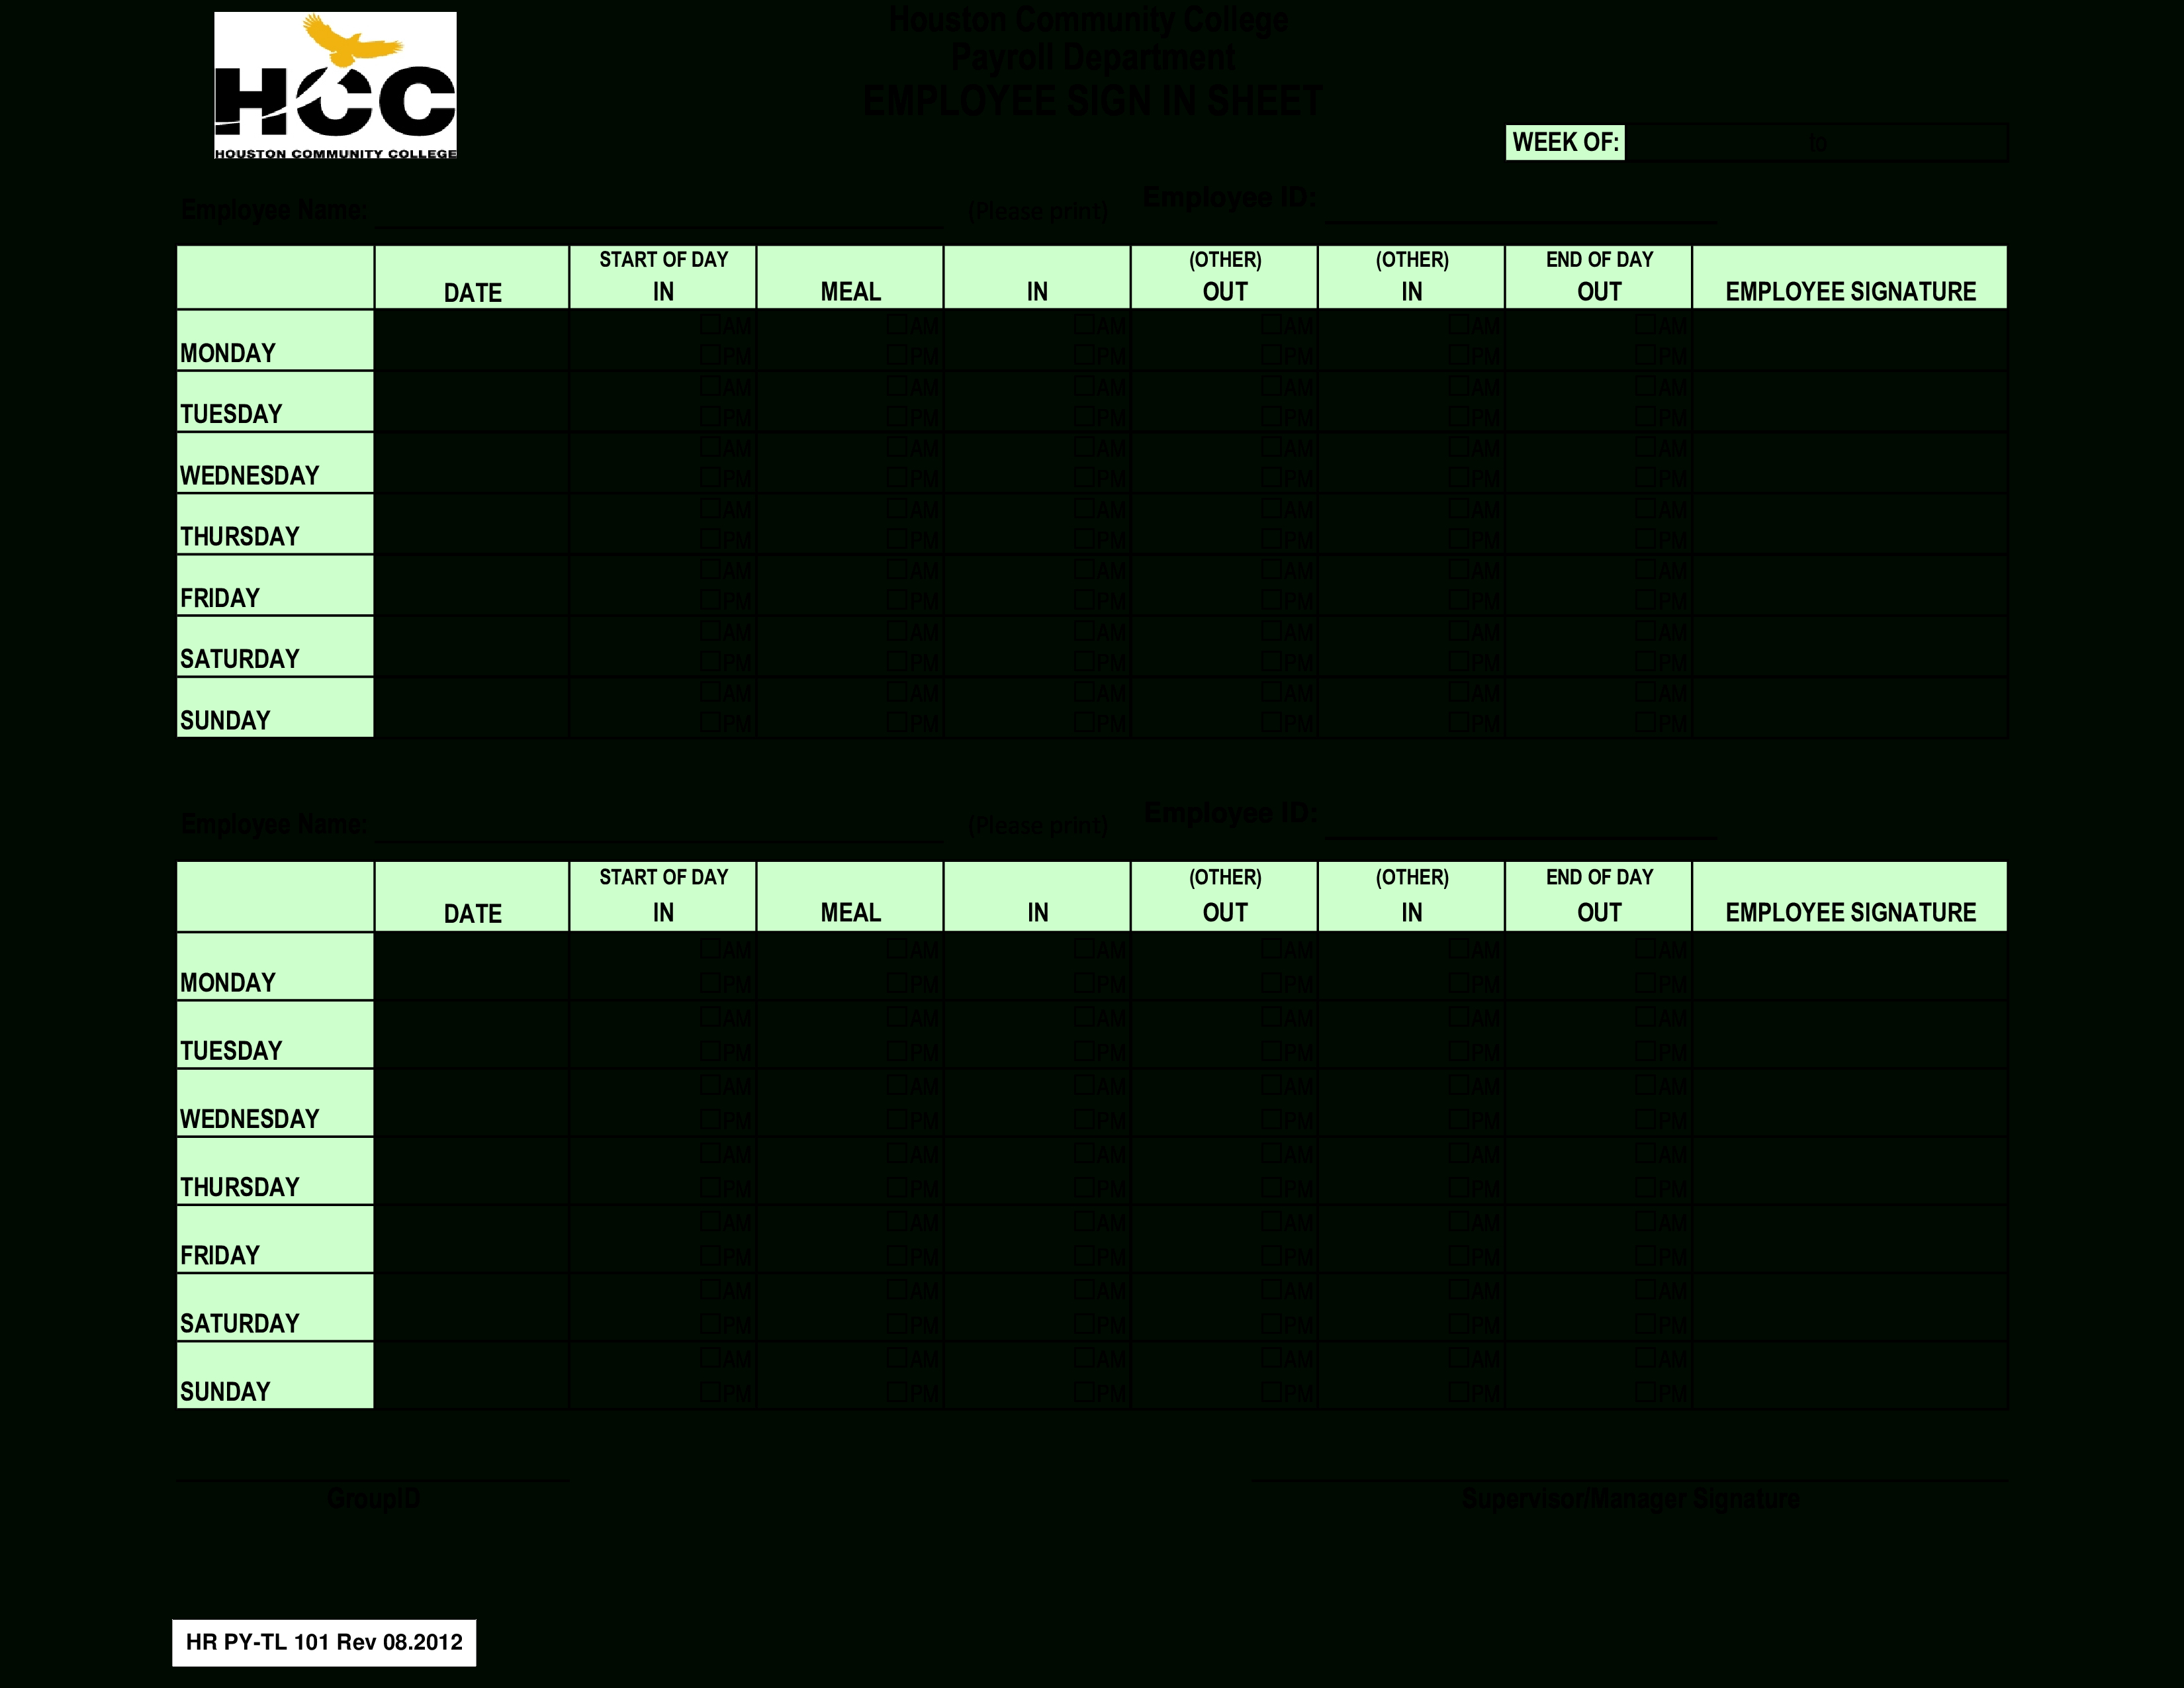 Free Employee Payroll Sign In Sheet | Templates At In Payroll Sign In Sheet Template